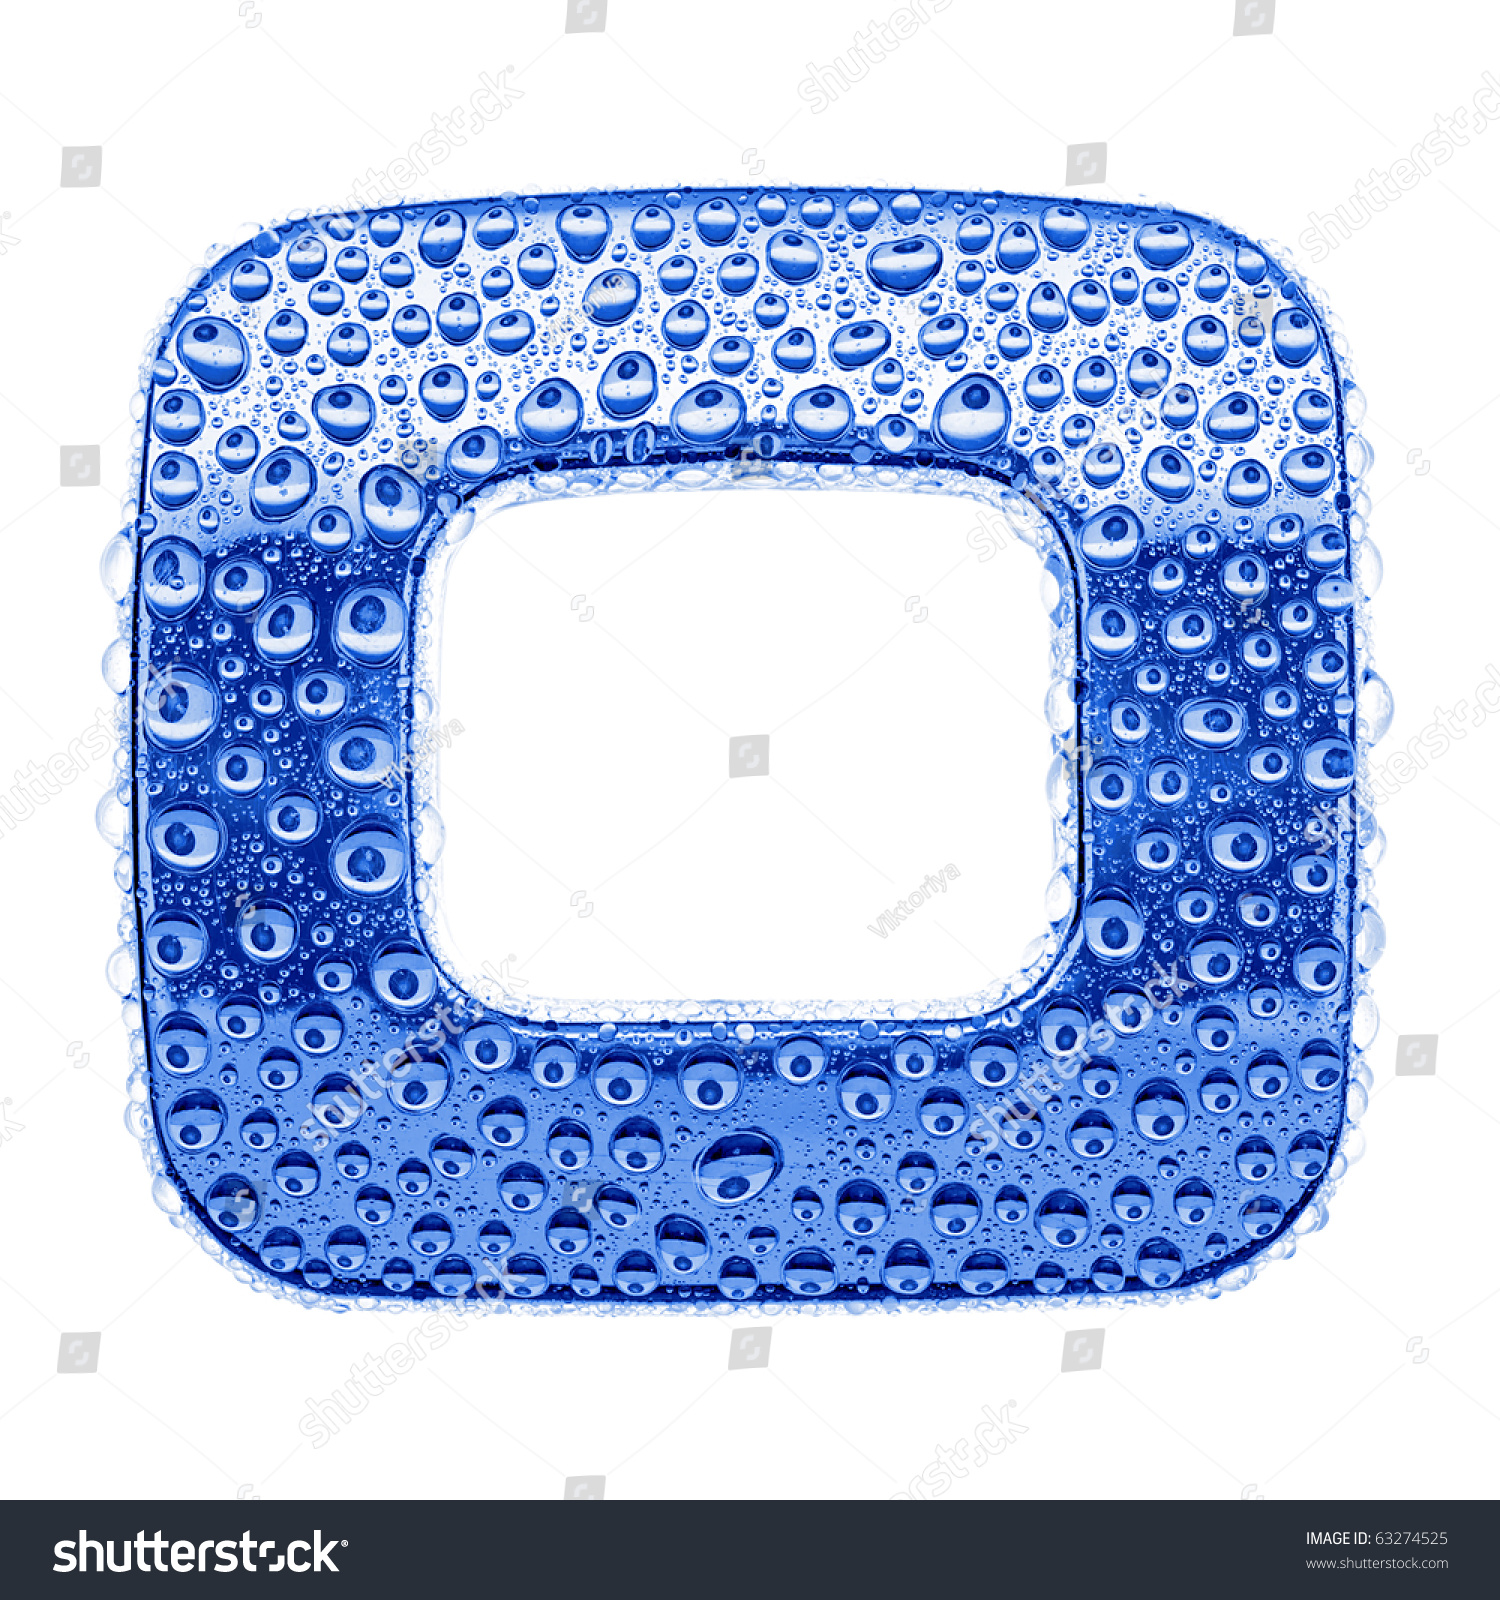 Blue ice alphabet symbol letter o stock illustration 63274525 blue ice alphabet symbol letter o water splashes and drops on glossy metal biocorpaavc